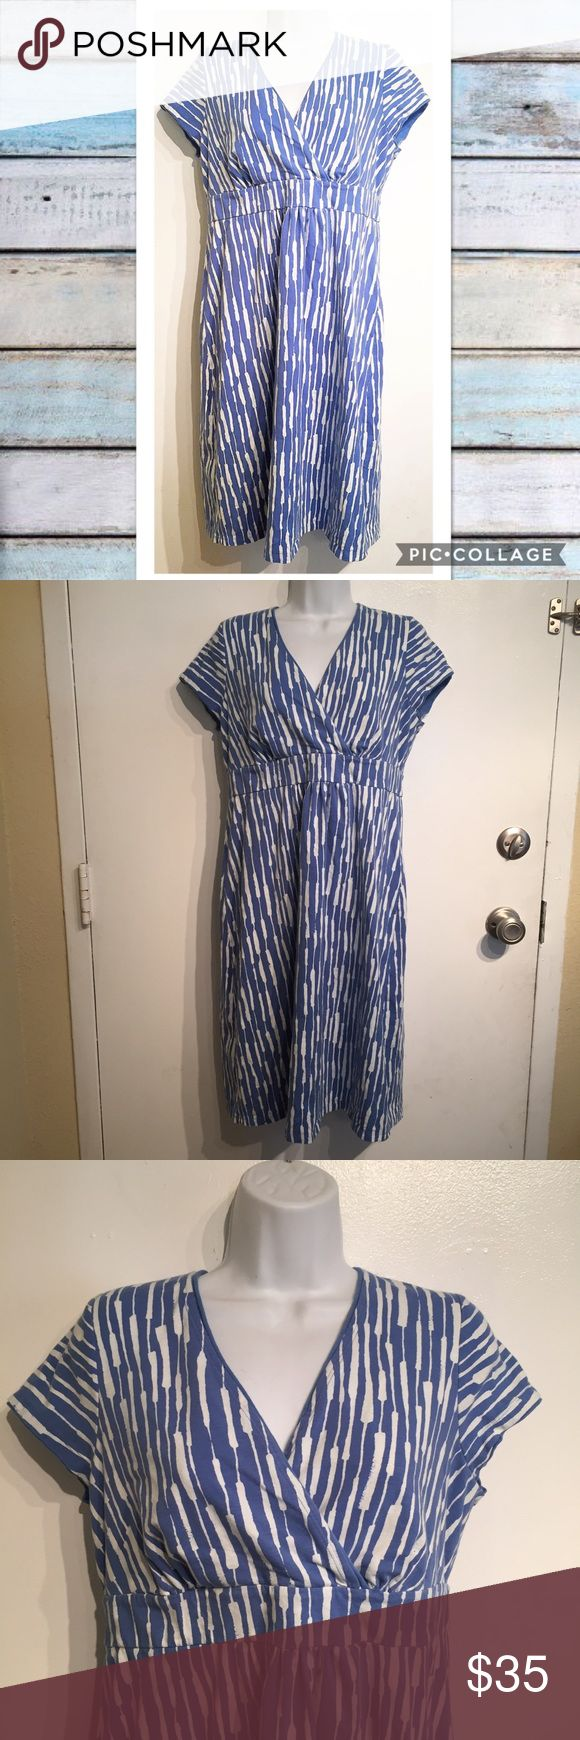 Boden Blue & White Abstract Print Dress Boden blue and white Abstract v Neck Dress. Can be dressed up or down. US size 10R. Great for spring and summer. No modeling. Smoke free home. I do discount bundles. Boden Dresses